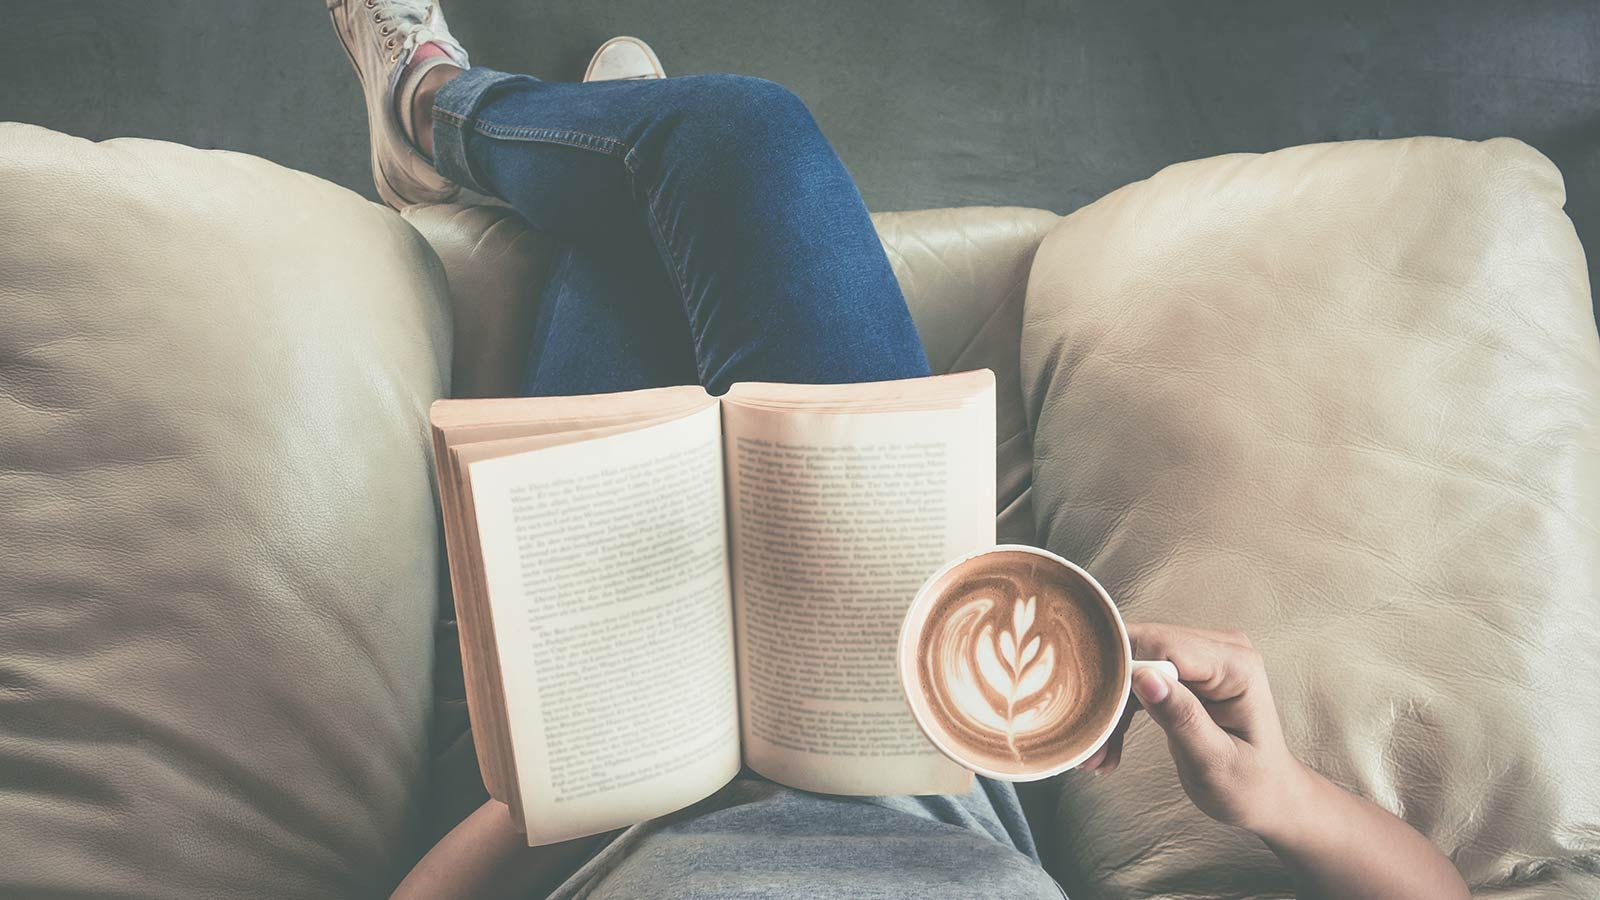 A woman's hand holding a mug of coffee with an open book in her lap.